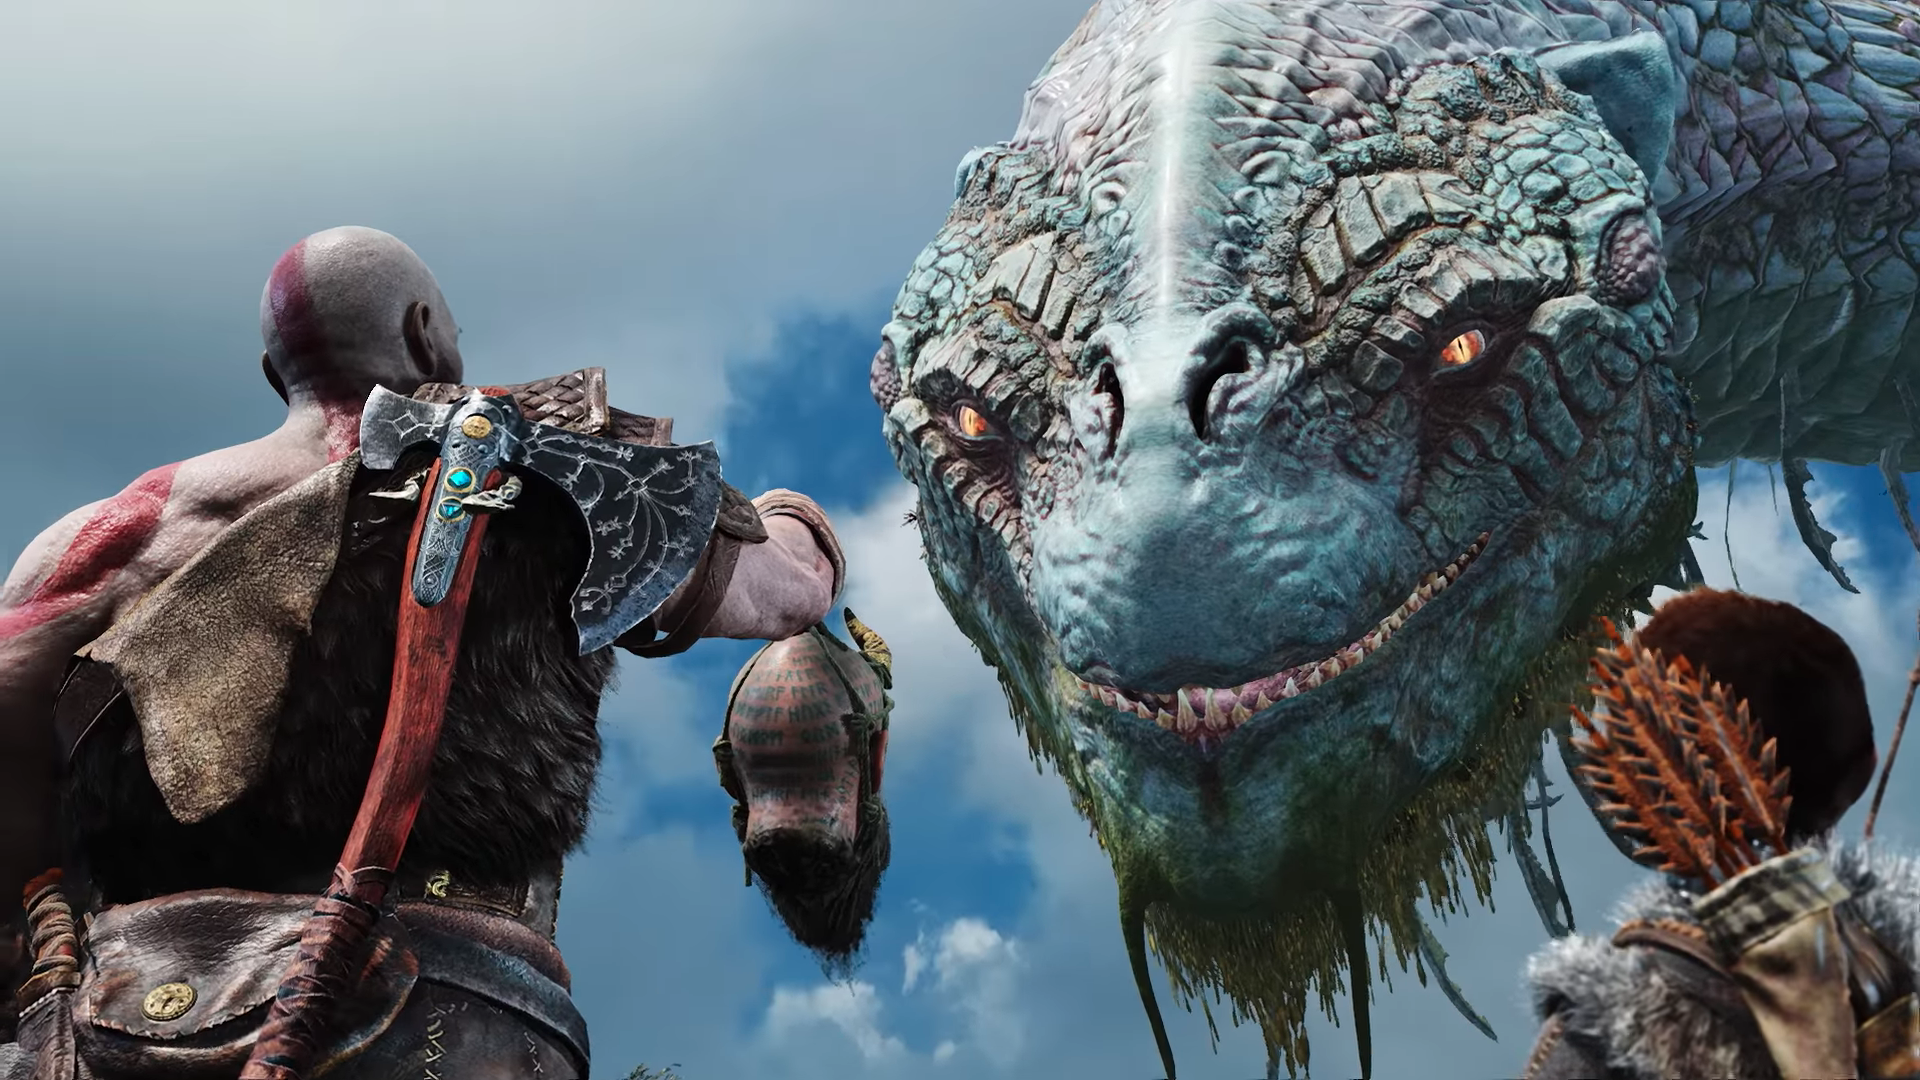 God of War has finally been locked to a April 20 release date